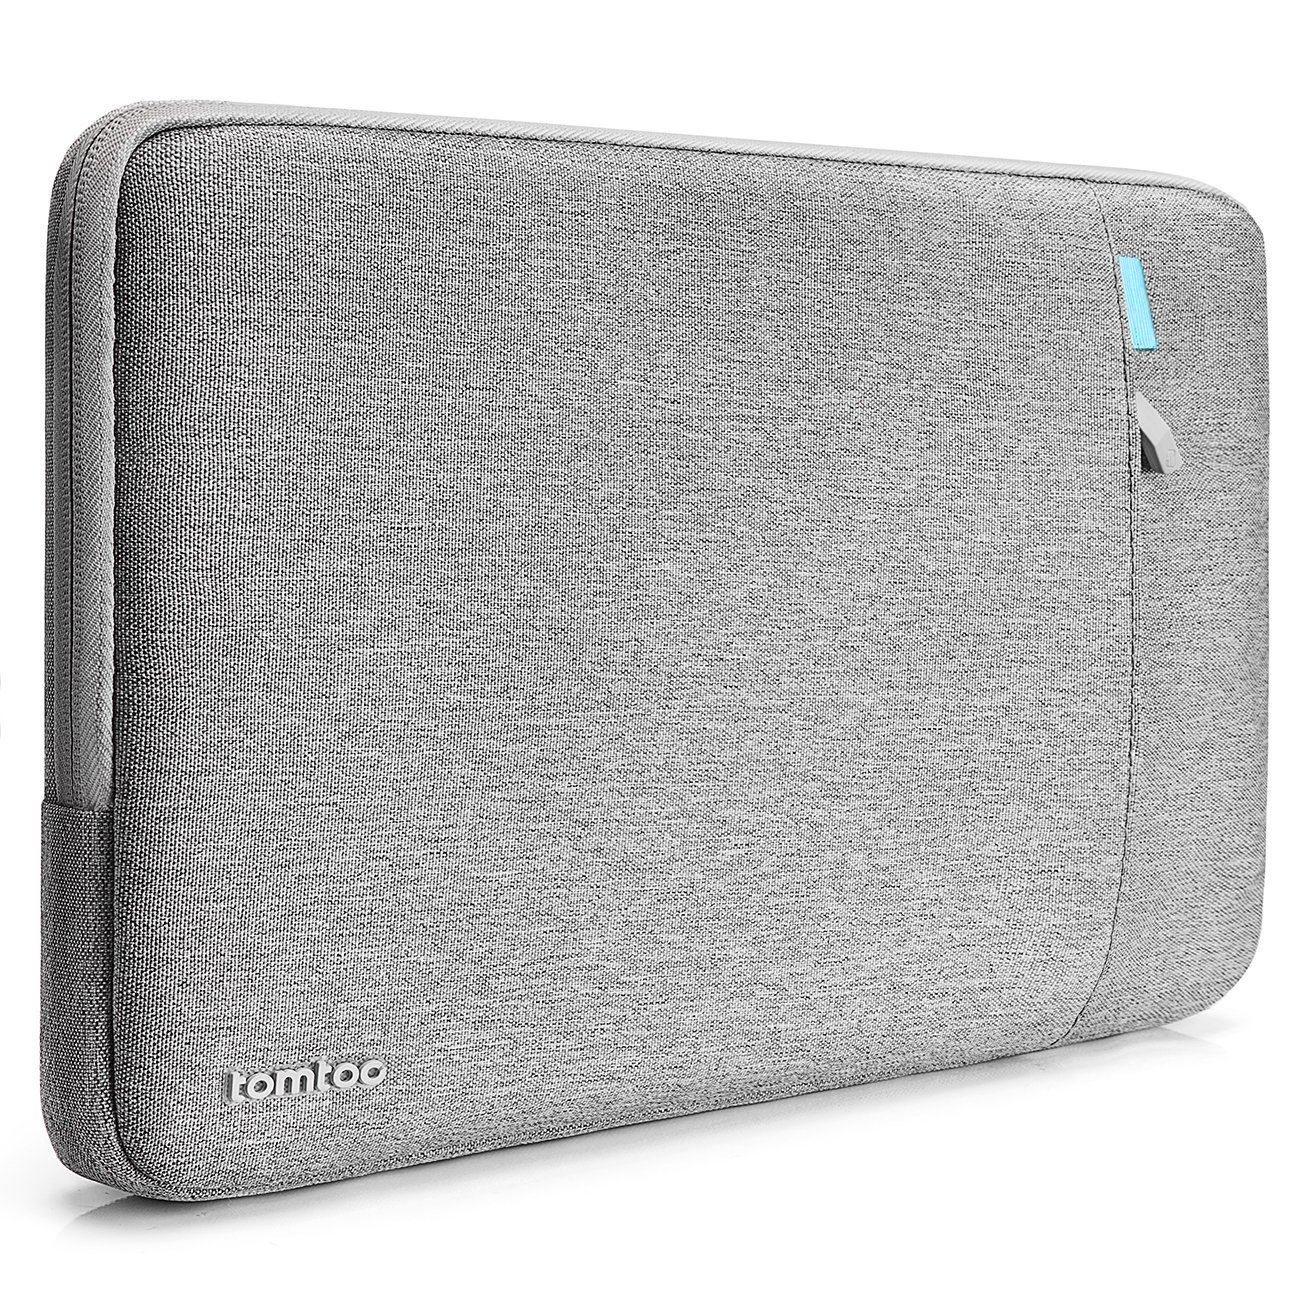 Tomtoc 360° Protective Sleeve for 15 Inch New MacBook Pro with Touch Bar A1707 | 14 Inch ThinkPad Laptop, Shockproof Spill-Resistant Laptop Tablet Bag, Support up to 13.75 x 9.48 In, Gray